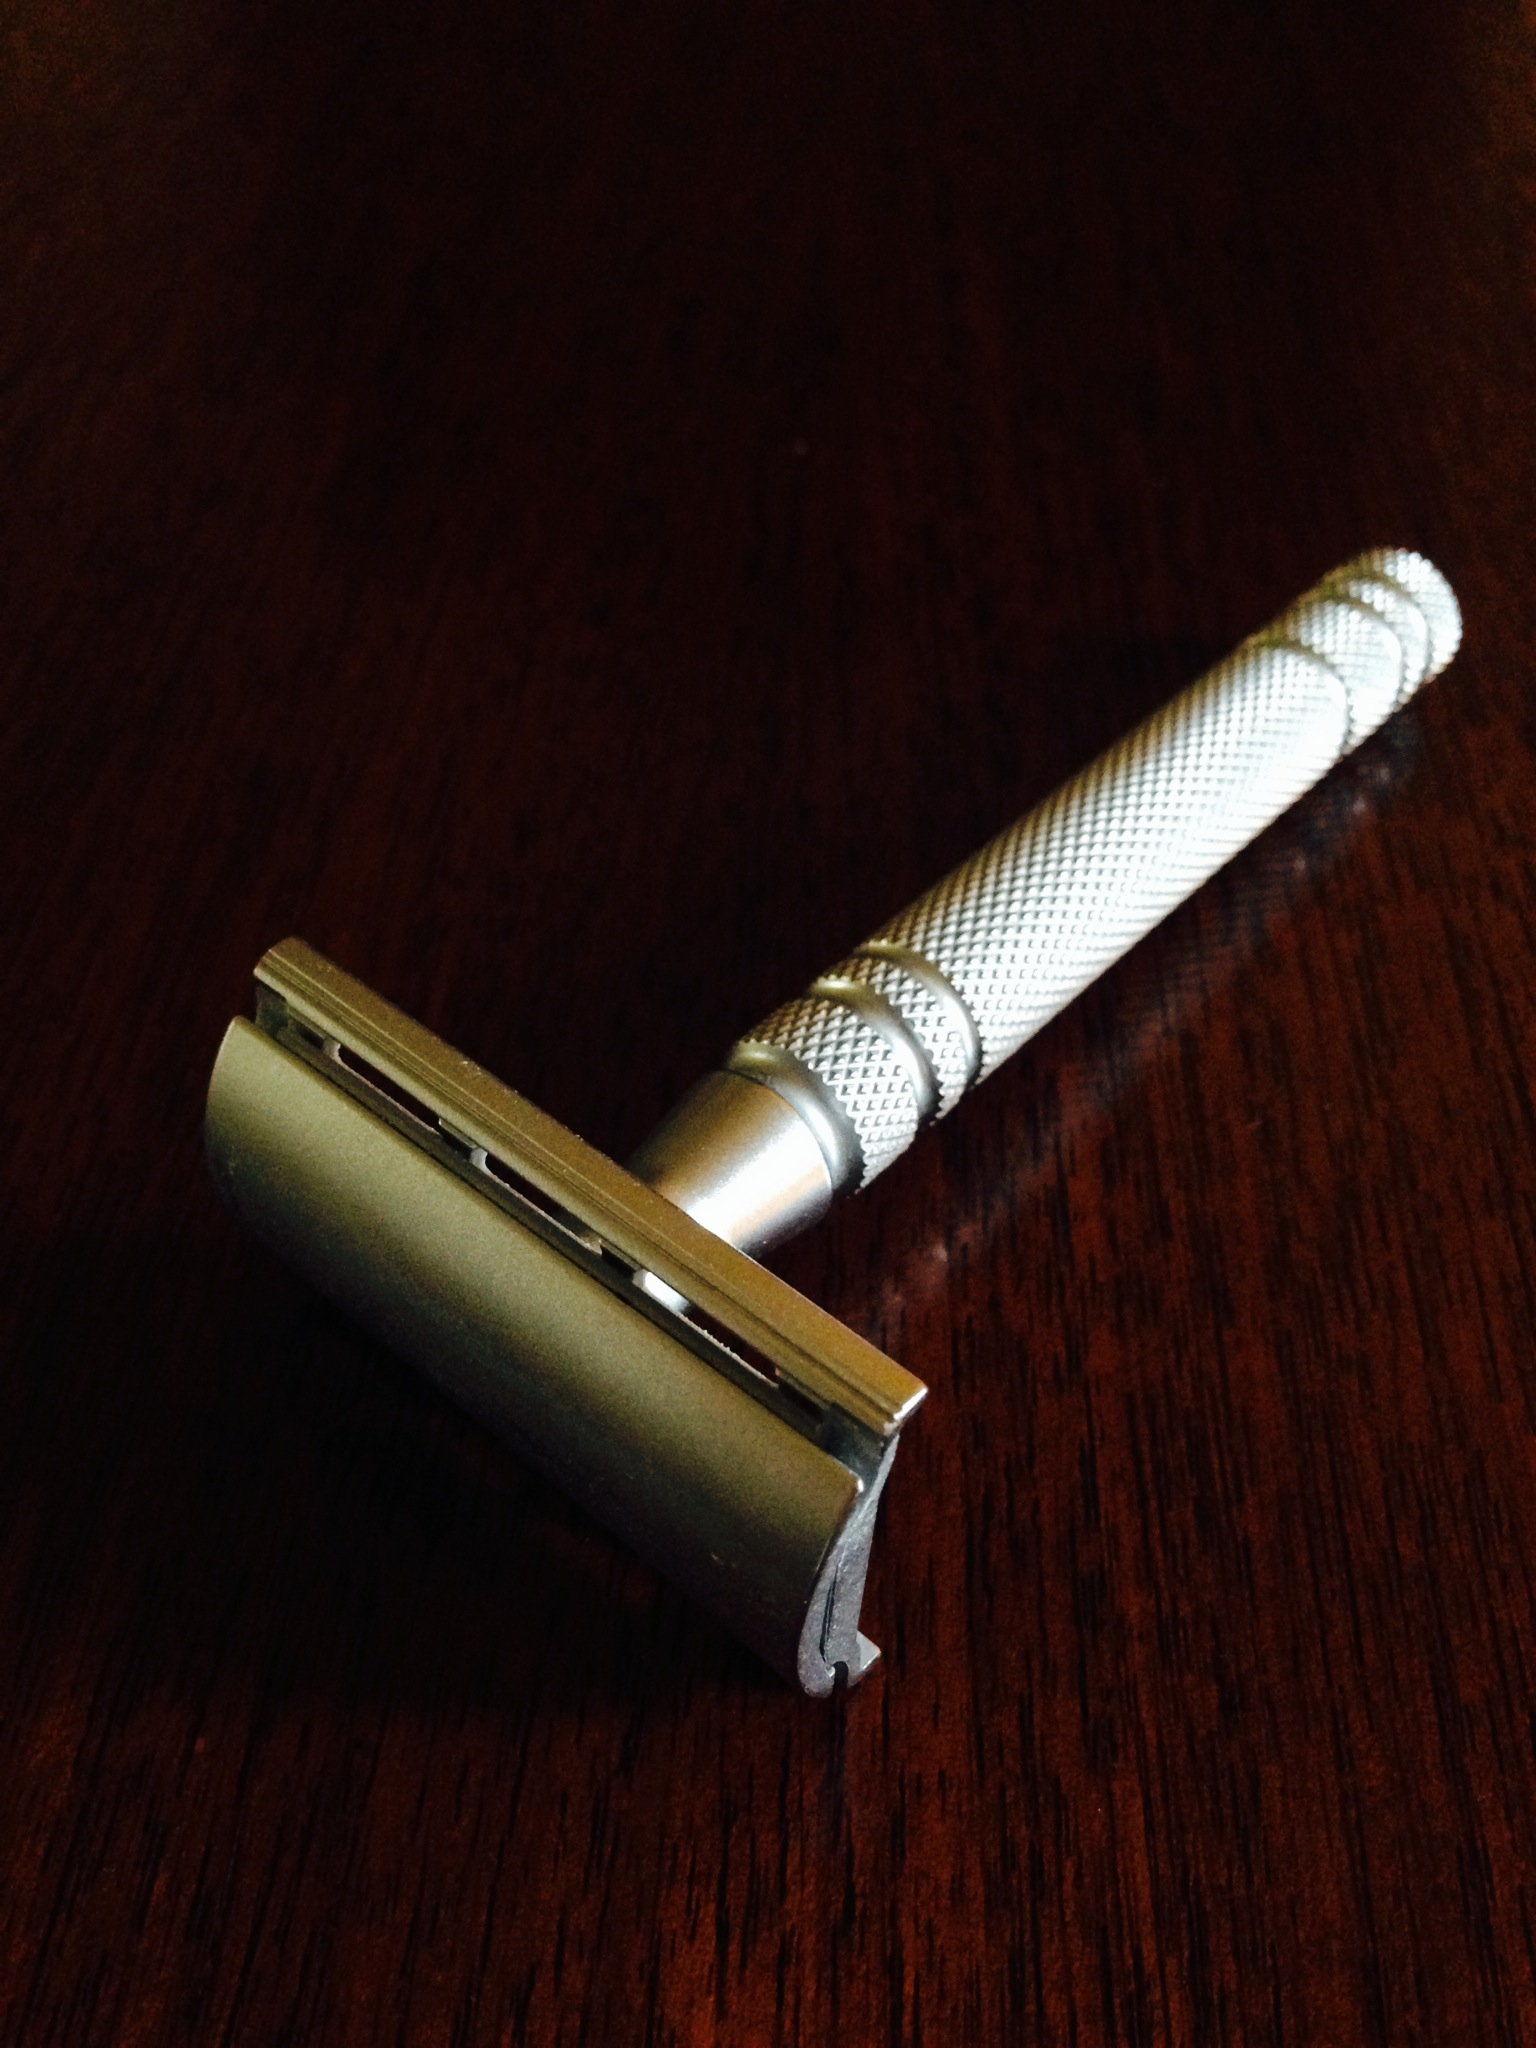 A Japanese Feather safety razor, perhaps the pinnacle of the genre.